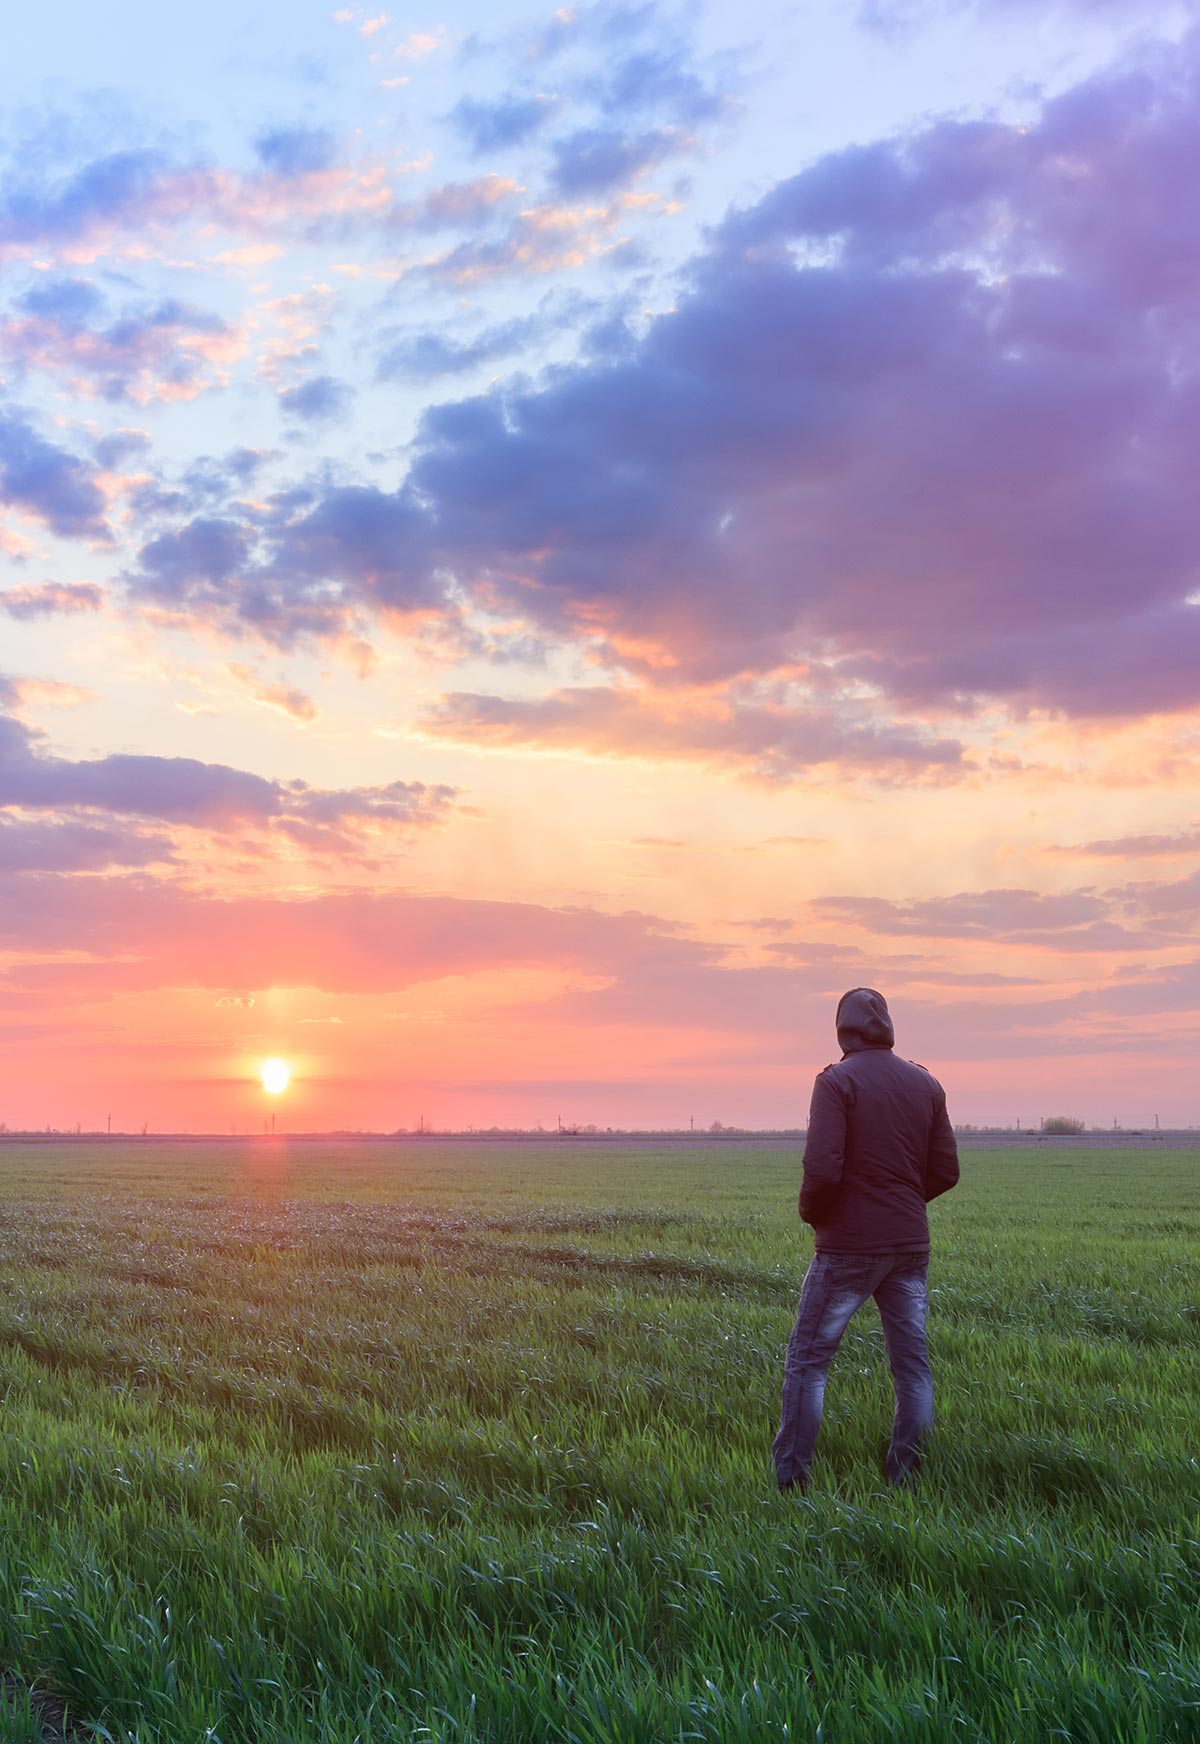 Regenerate your Mind Agriculture and Mental Health